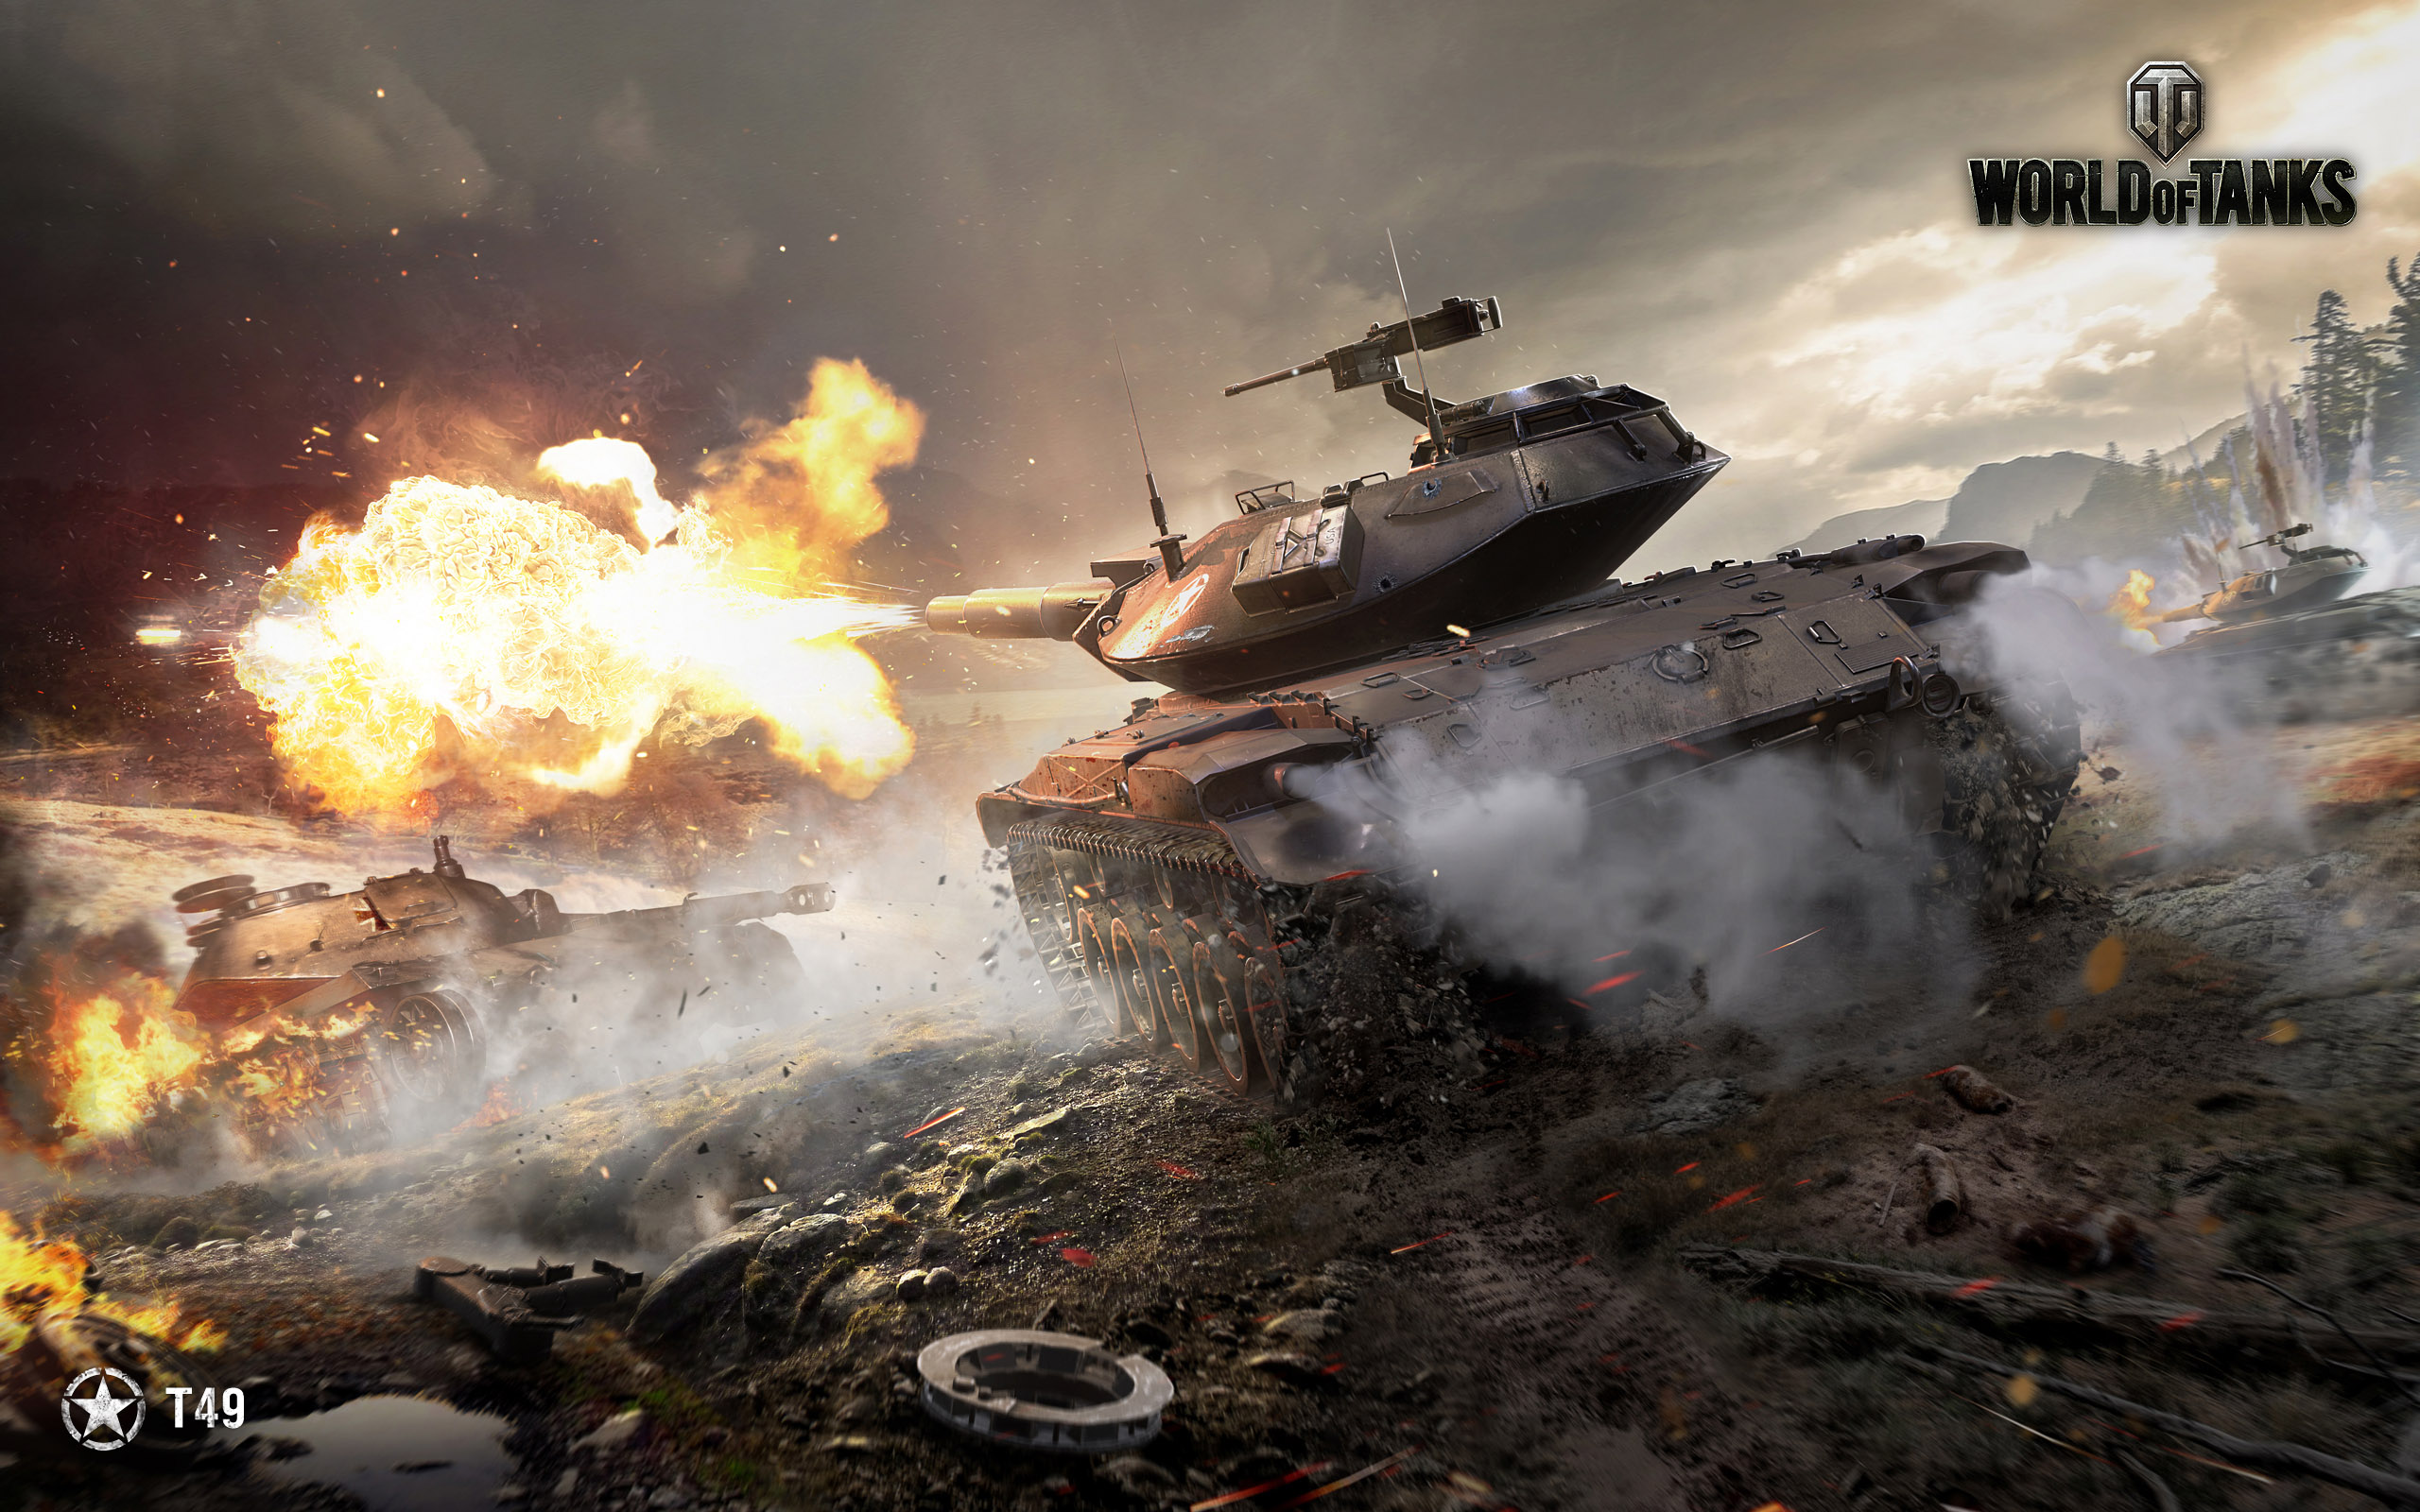 October Wallpaper | General News | World of Tanks